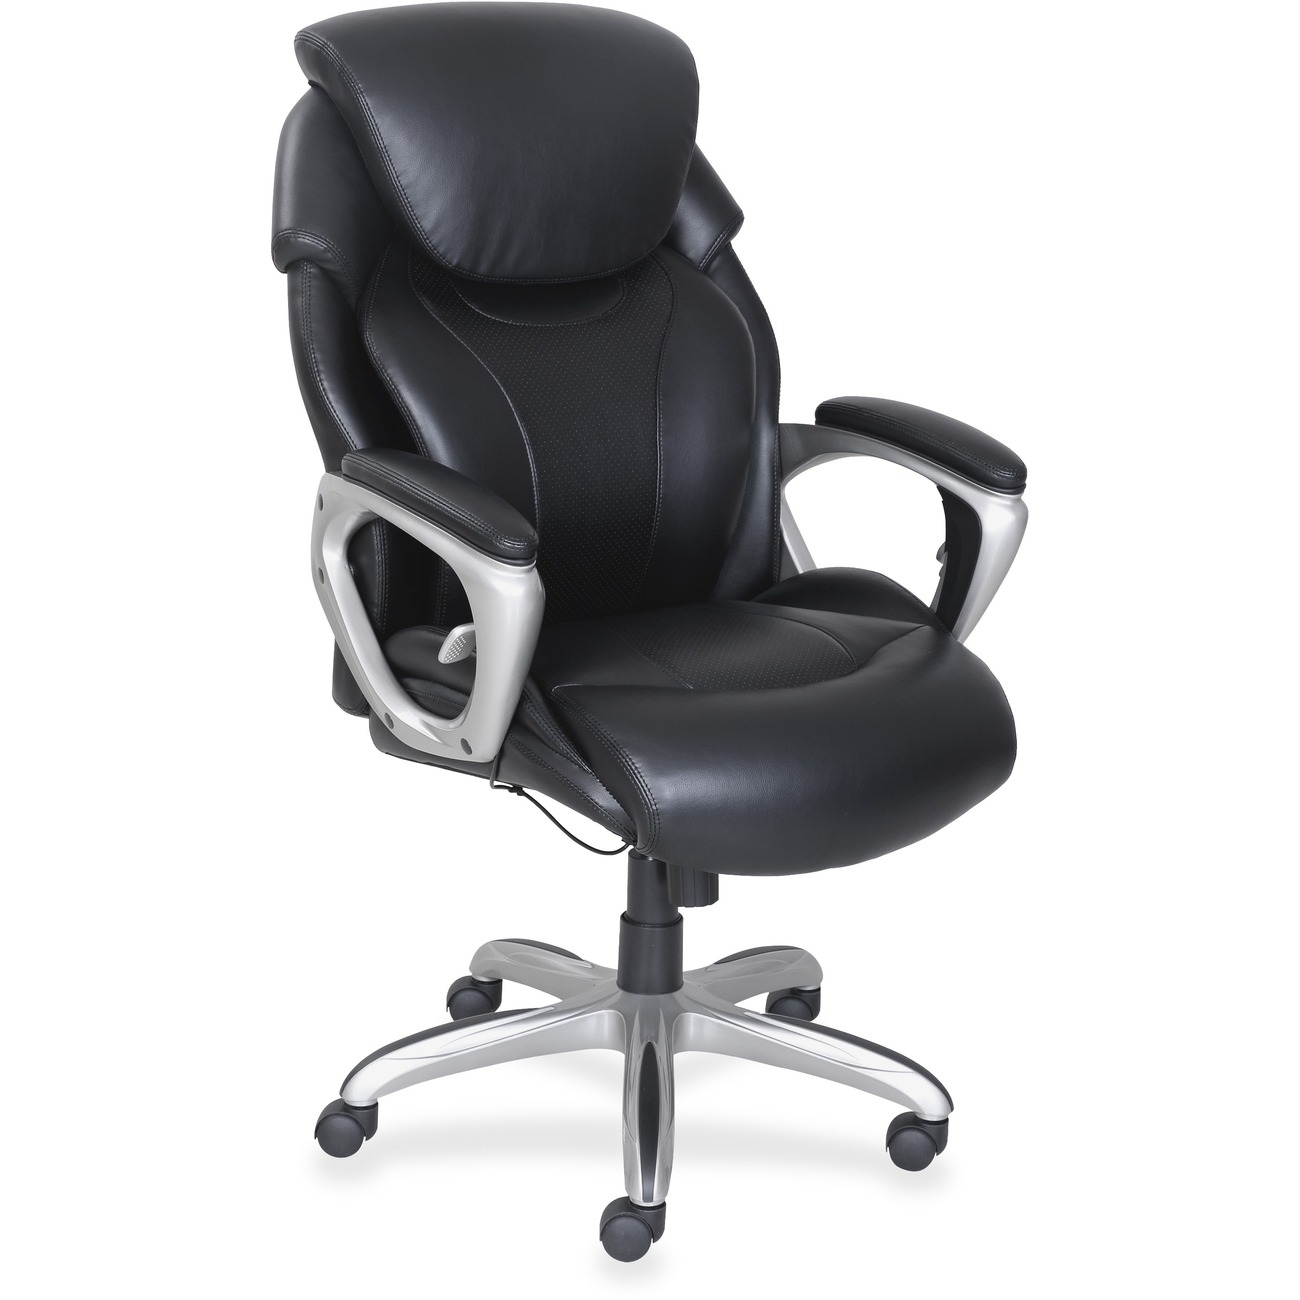 selkirk cellulars office supplies corp furniture chairs